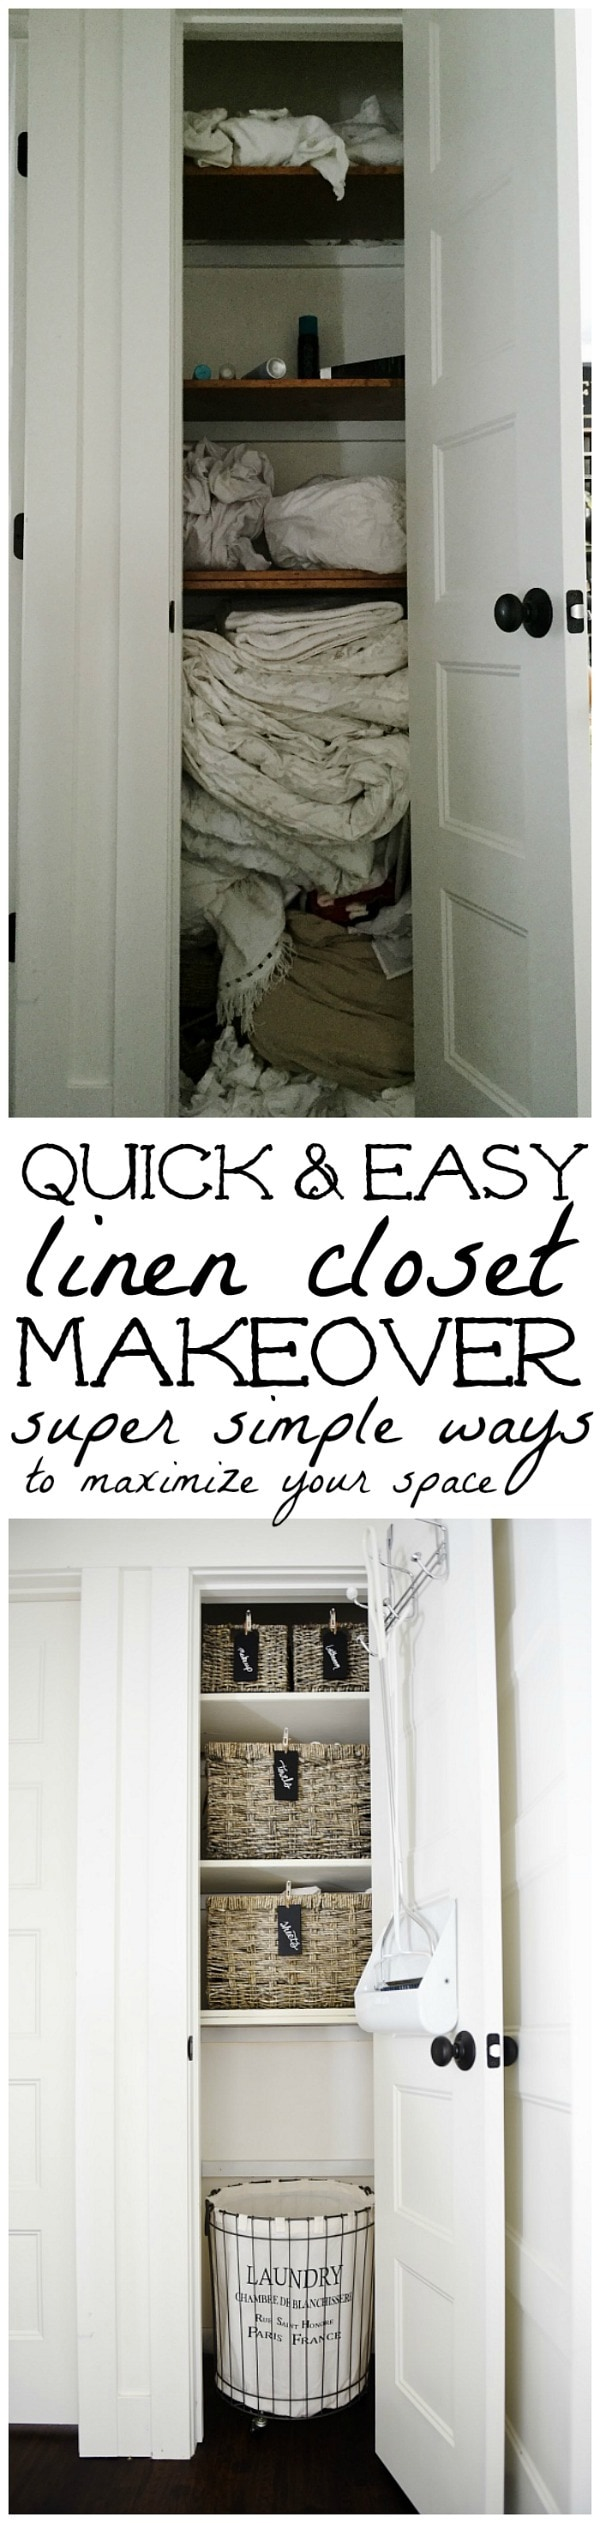 Quick & Easy linen closet makeover - Super simple ways to maximize small spaces & make them presentable to your family & guests.